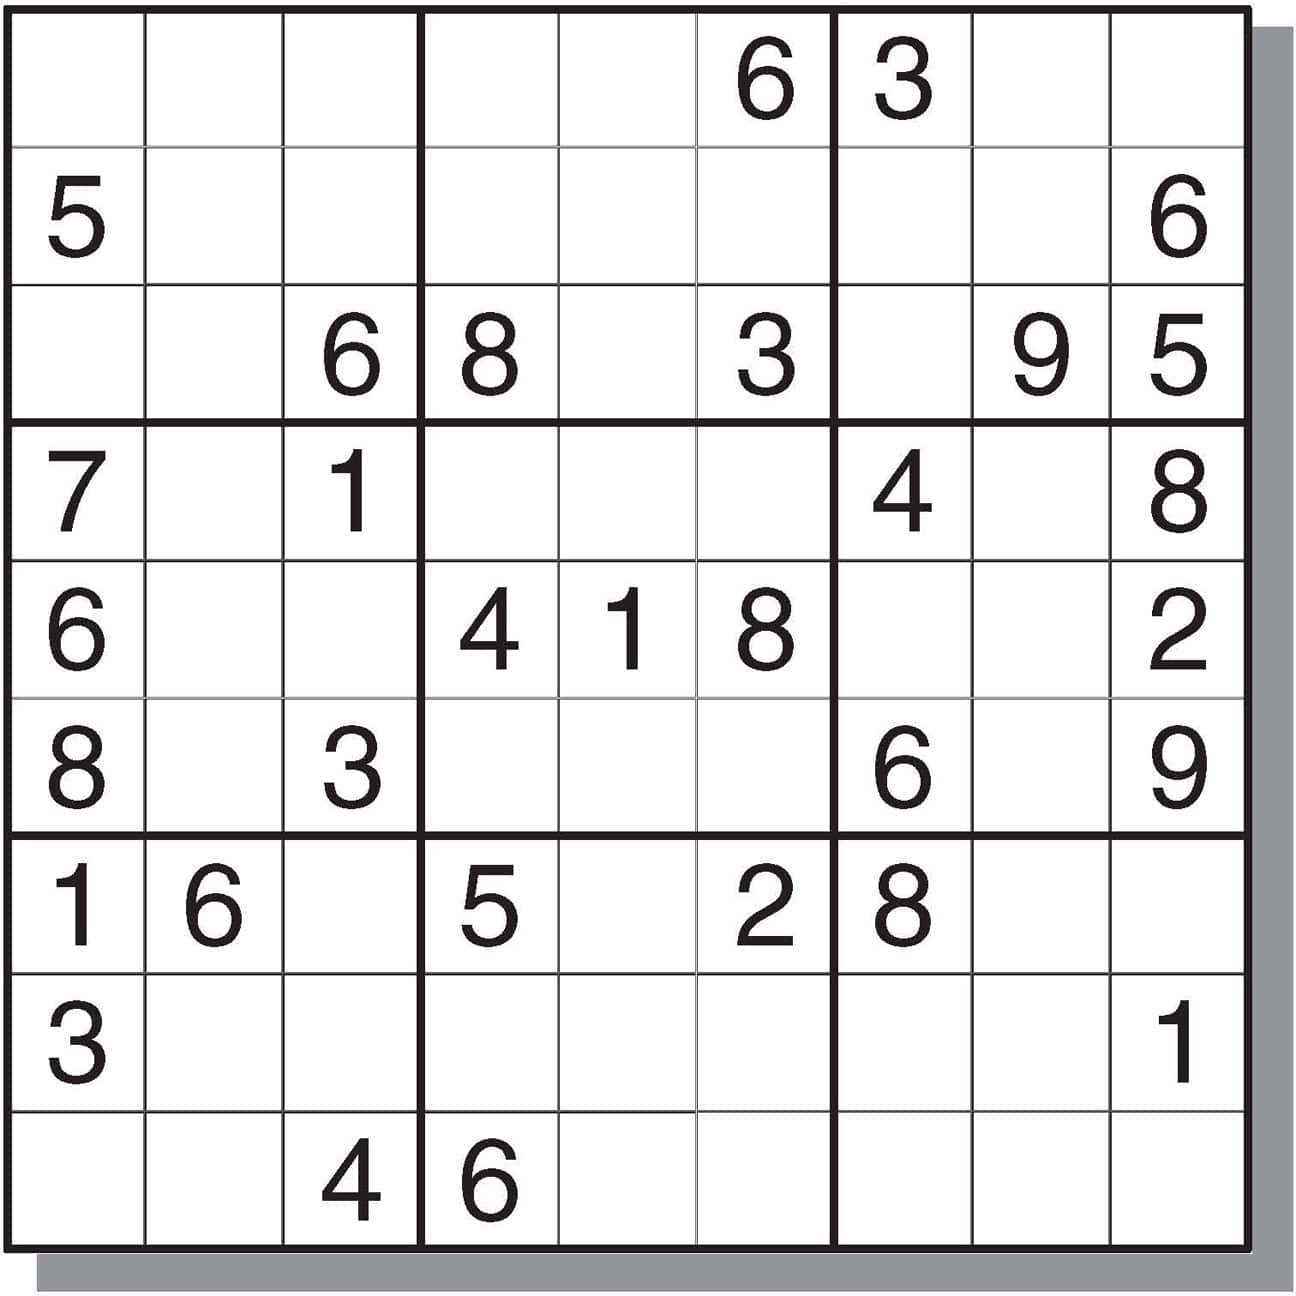 photo about Sudoku Printable Hard titled Printable Challenging Sudoku Puzzles Quotation Photographs High definition Absolutely free